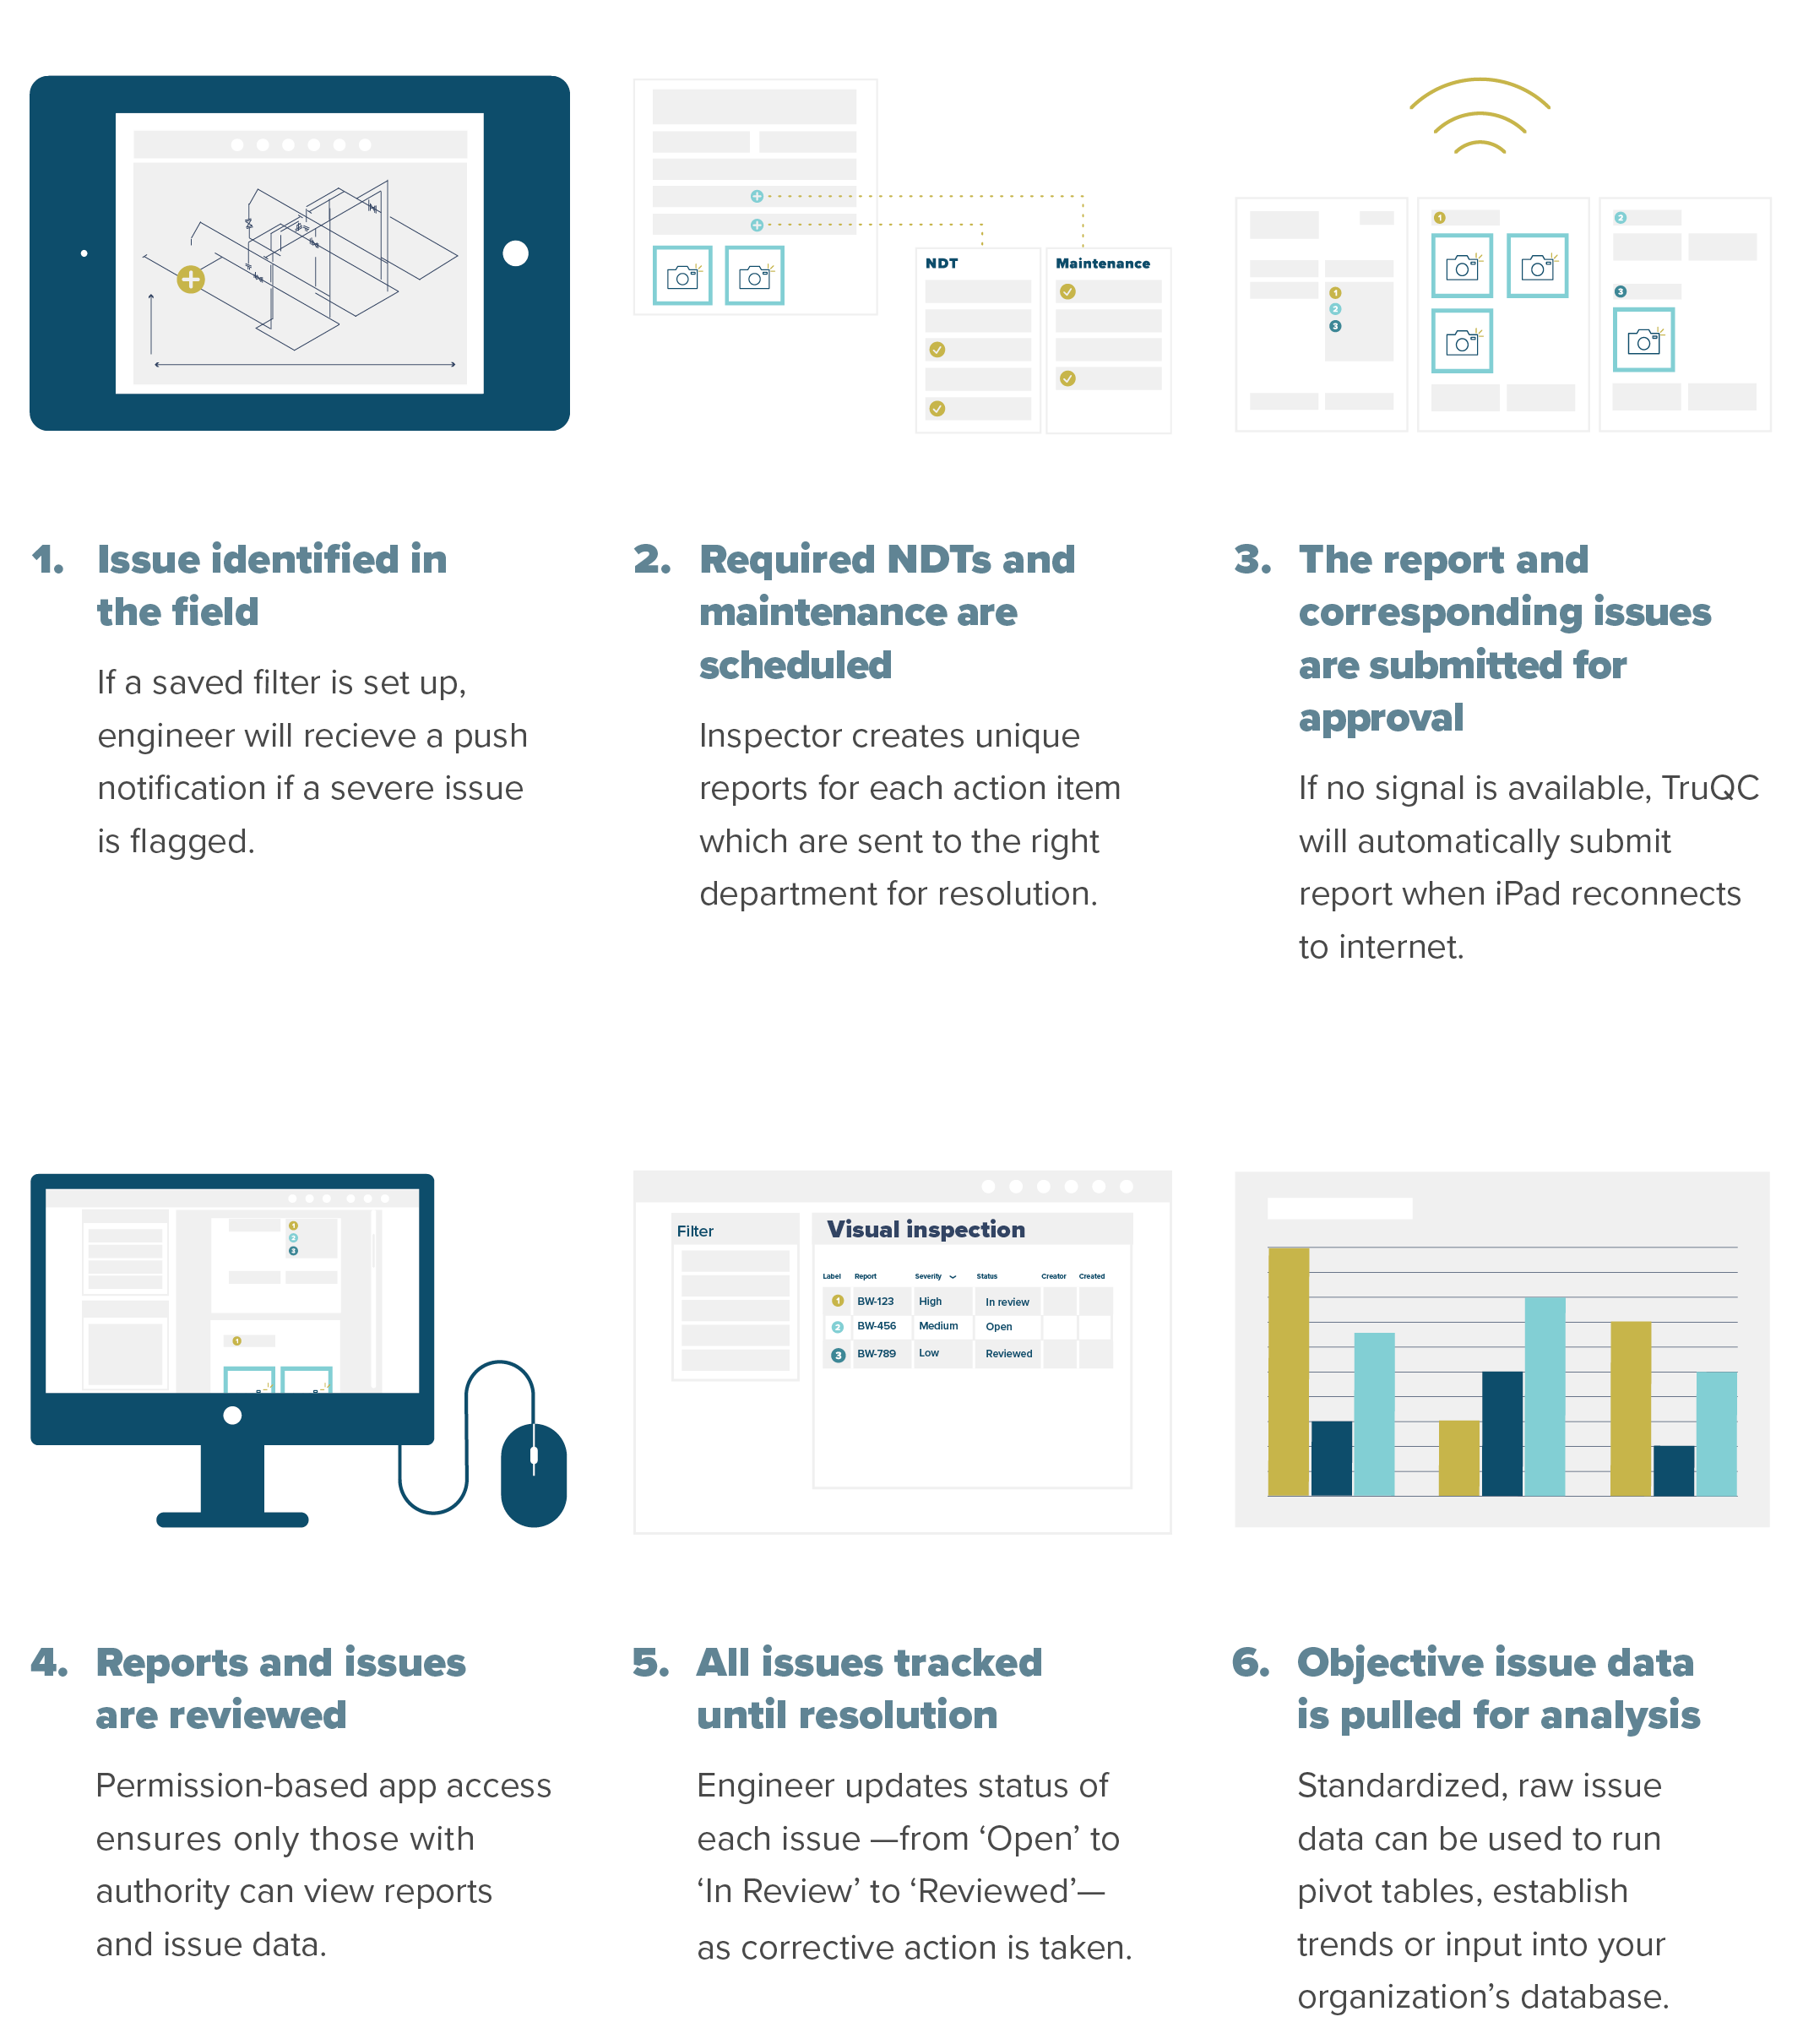 Lifecycle of an issue: From identification to resolution